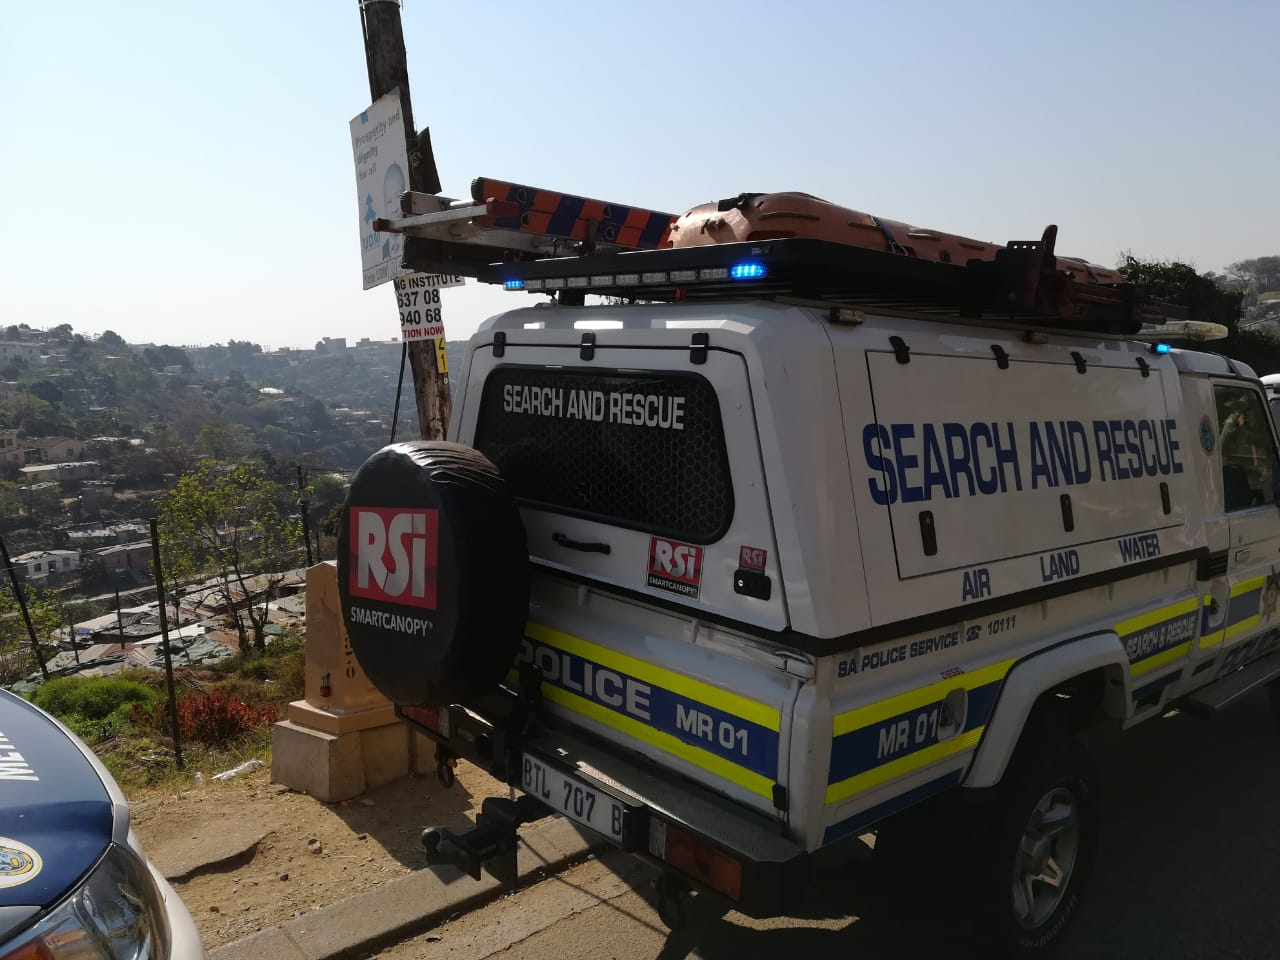 A fire at Shembe Beachway Informal Settlement destroyed 15 shacks and killed 3 children